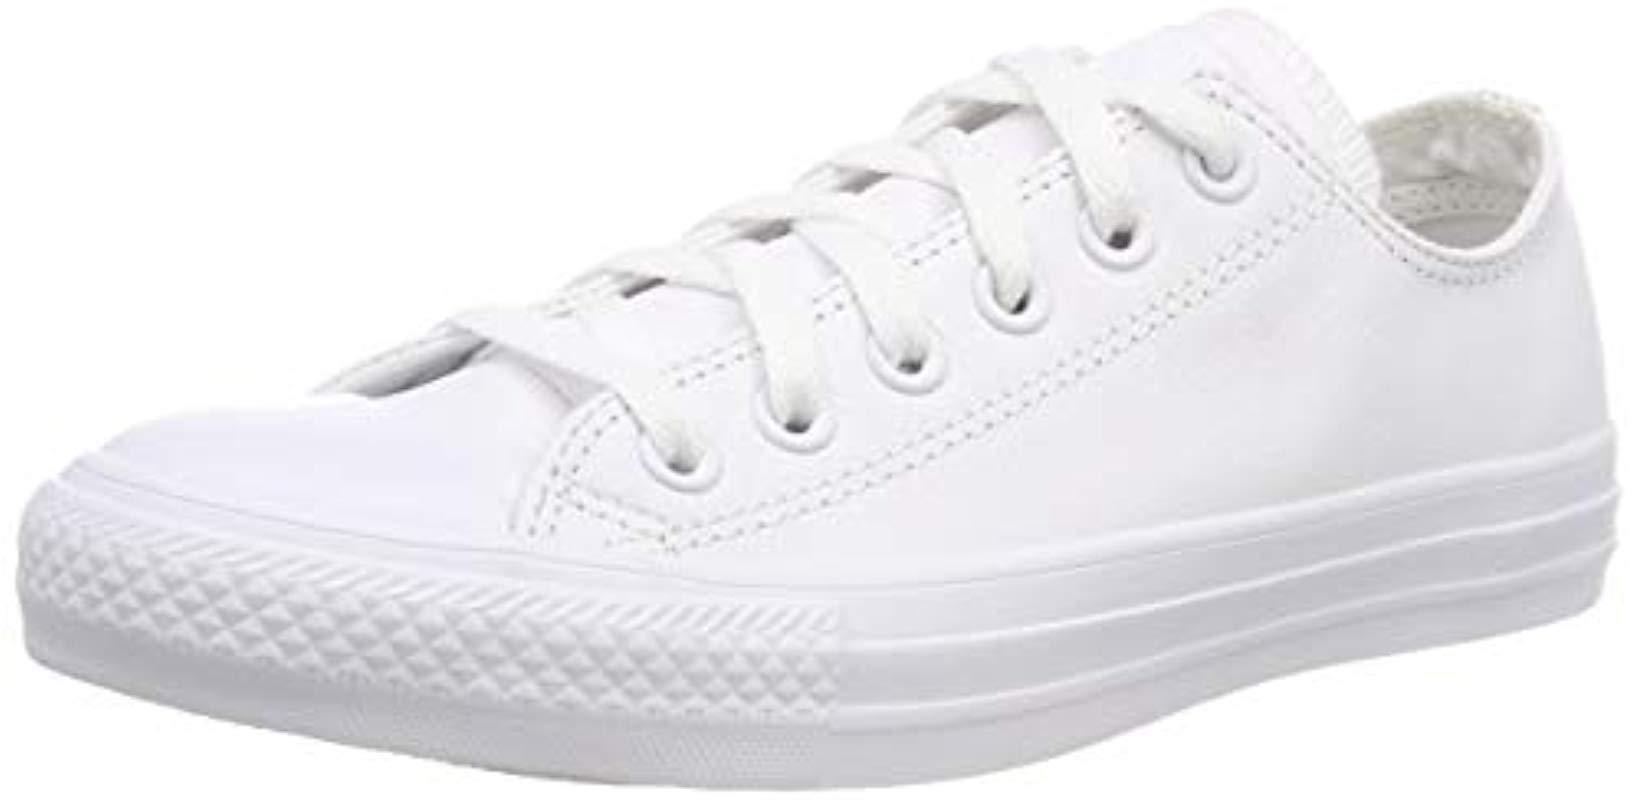 08091fbae9ad Converse Chuck Taylor All Star Oxford Fashion Sneaker in White - Lyst